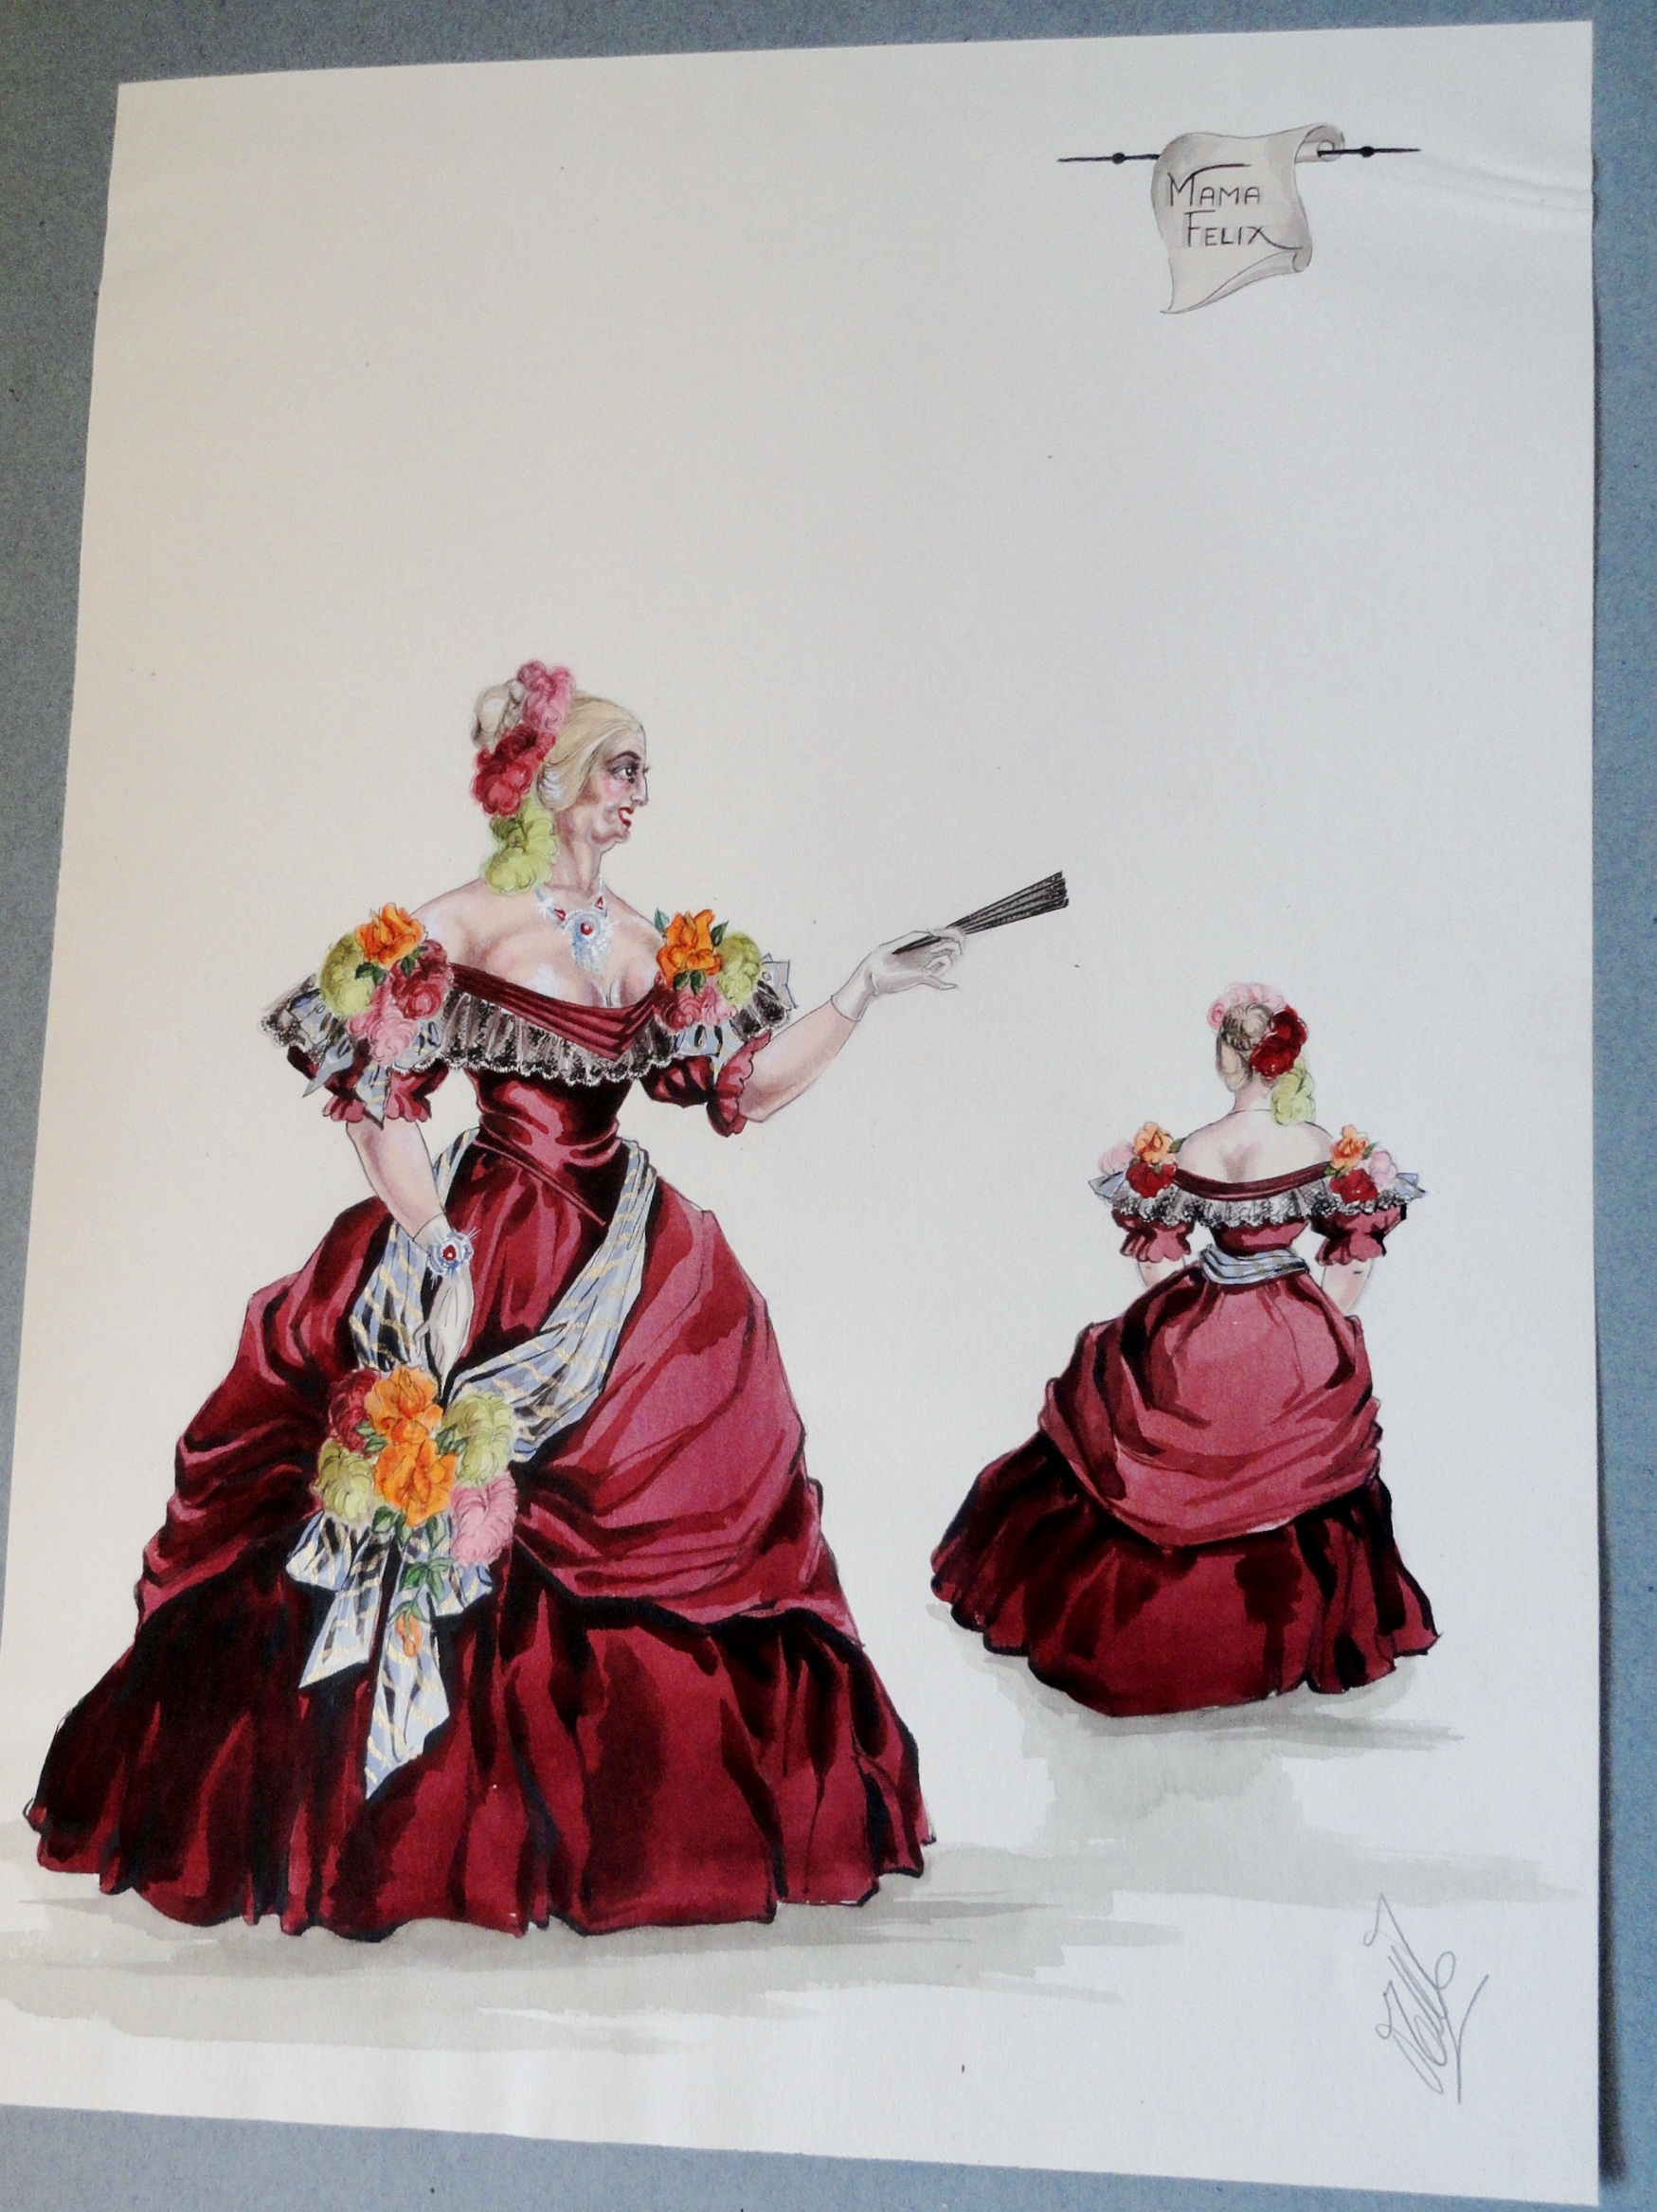 Rachel Mama Felix in red gown. Pen and Ink and Watercolor. From the Rachel Portfolio by Owen Hyde Clark. $300.00.